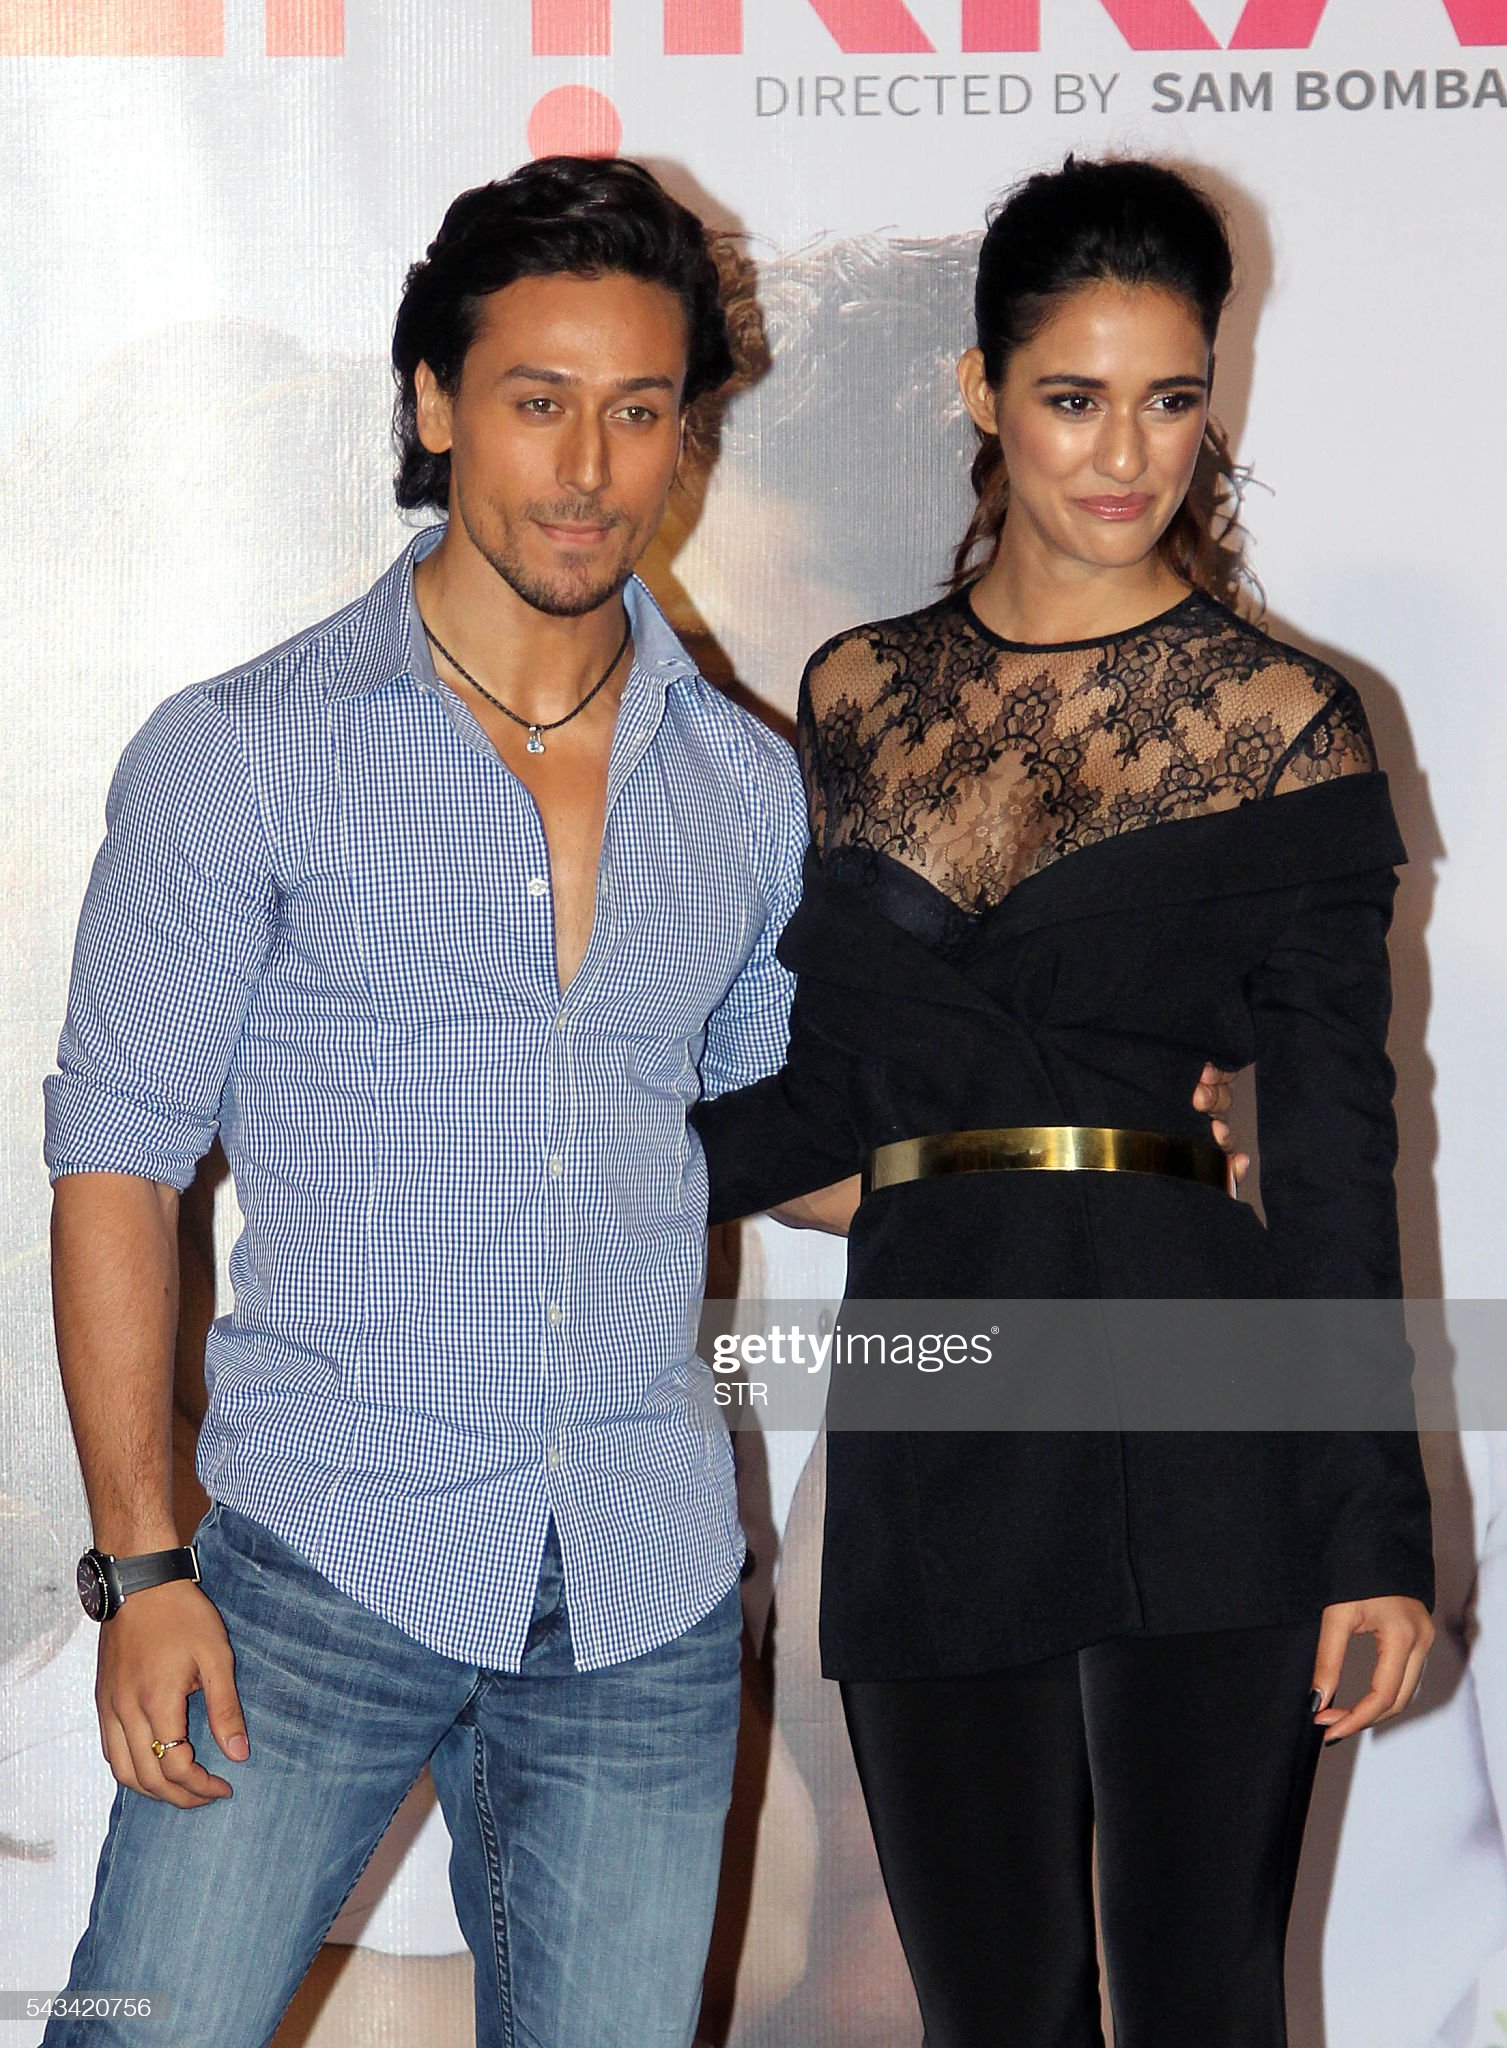 indian-bollywood-actors-tiger-shroff-and-disha-patani-pose-during-the-picture-id543420756